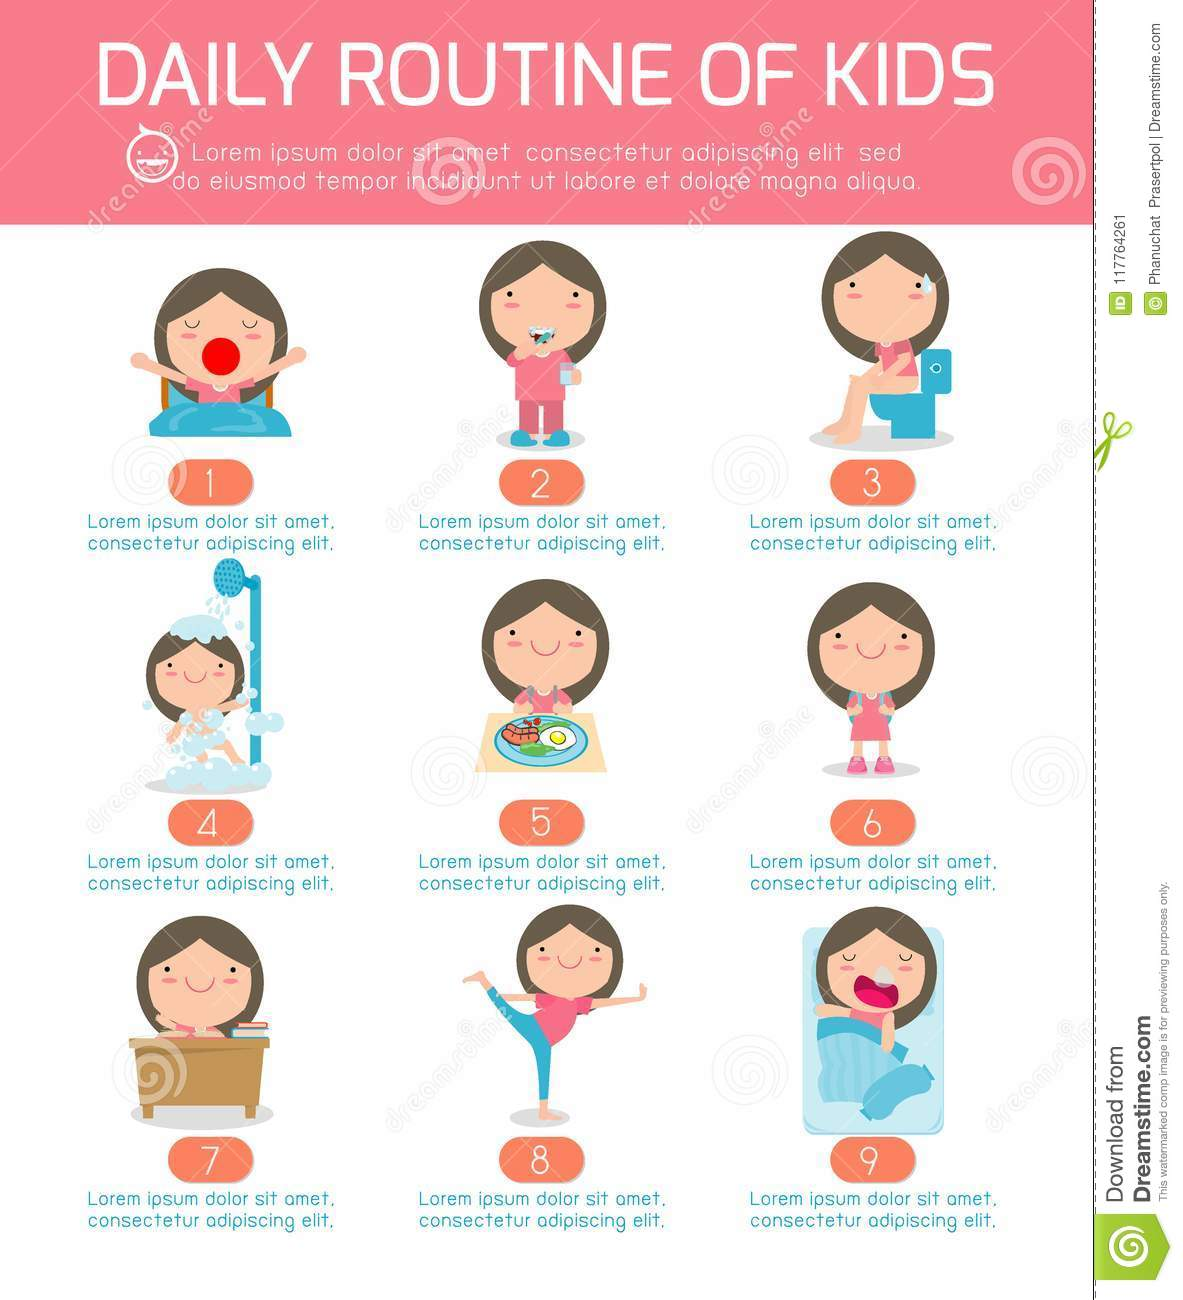 Daily Routine Daily Routine Of Happy Kids Infographic Element Health And Hygiene Daily